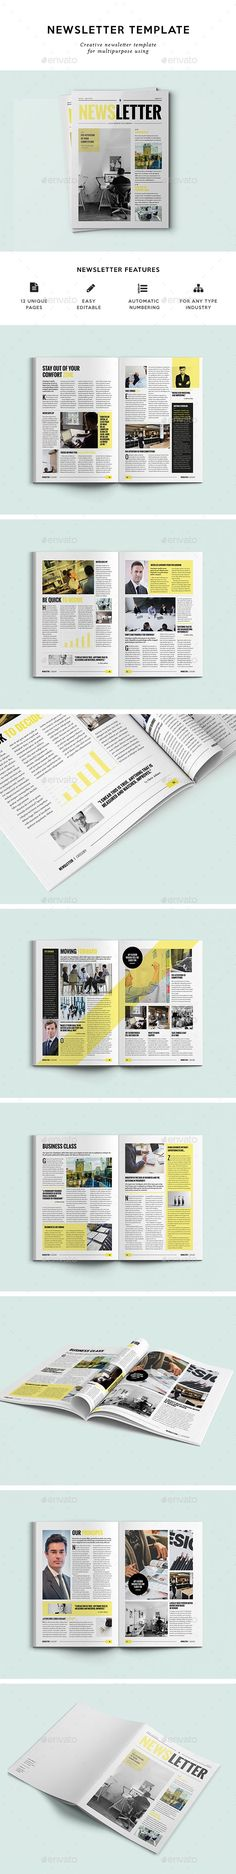 12 Pages Corporate Newsletter Template InDesign INDD. Download here: http://graphicriver.net/item/12-pages-corporate-newsletter/16307550?ref=ksioks